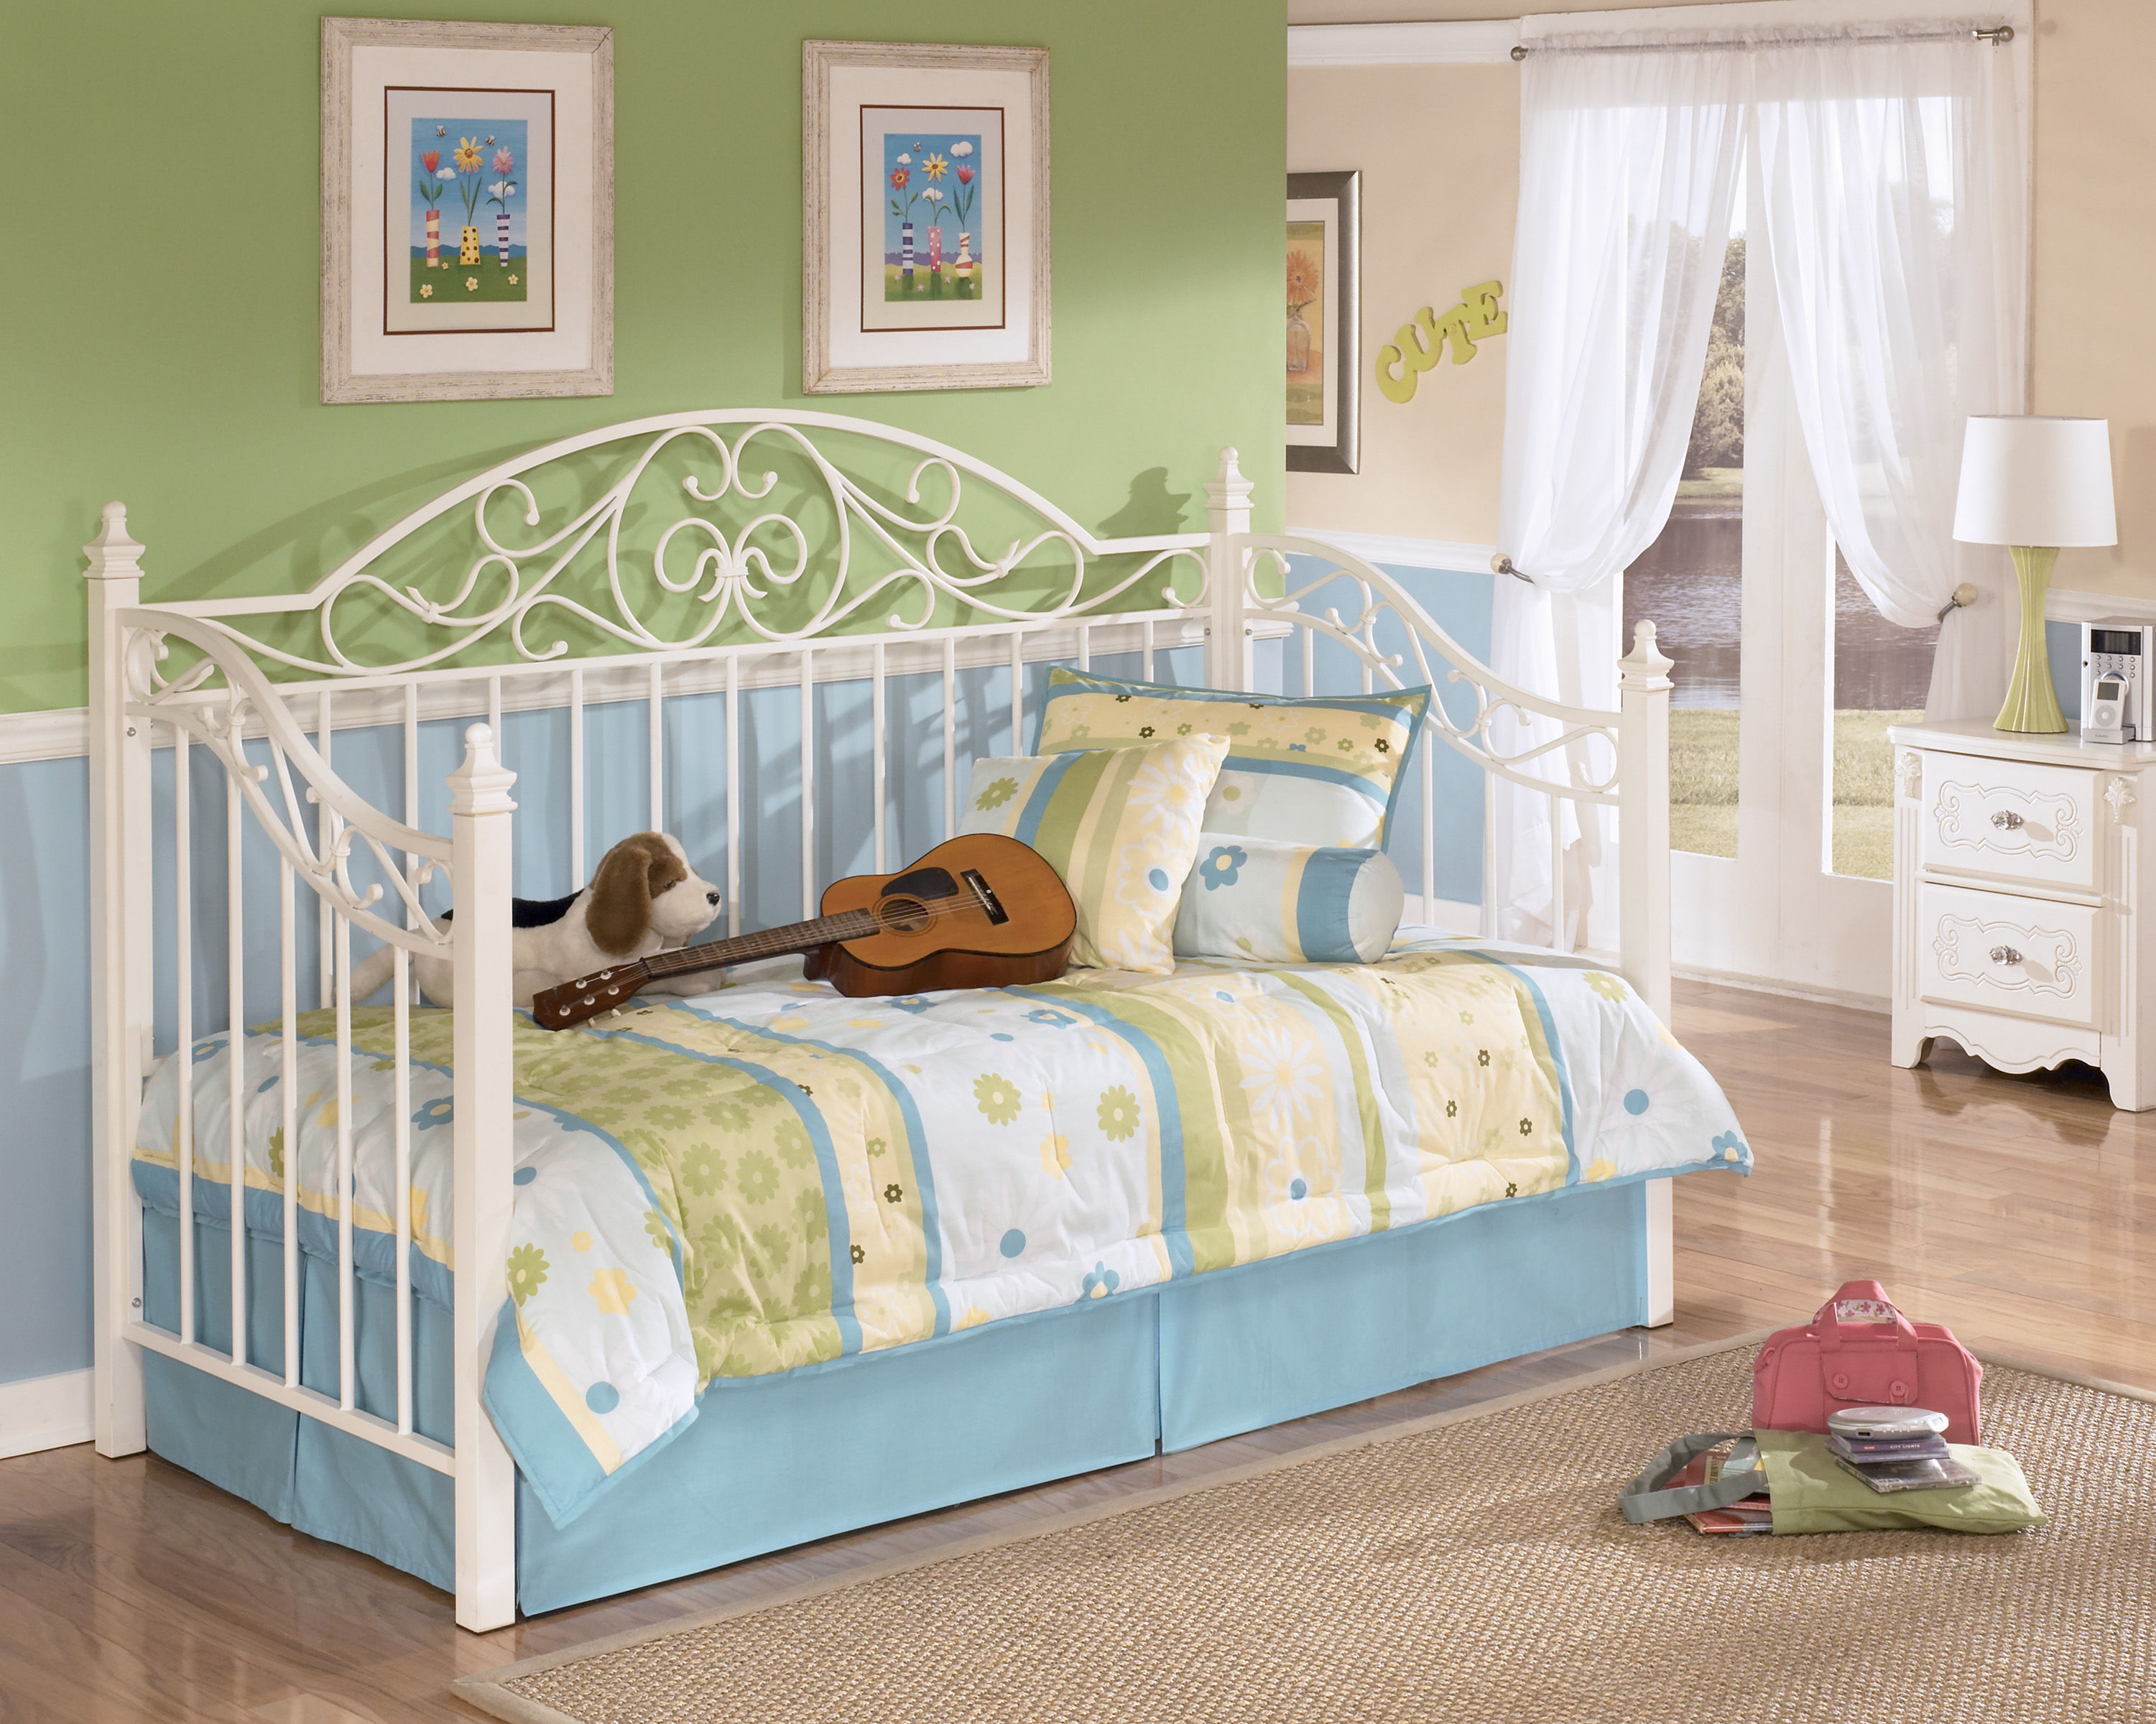 Ashley Furniture Exquisite Luminous White Metal Day Bed With Deck The Classy Home